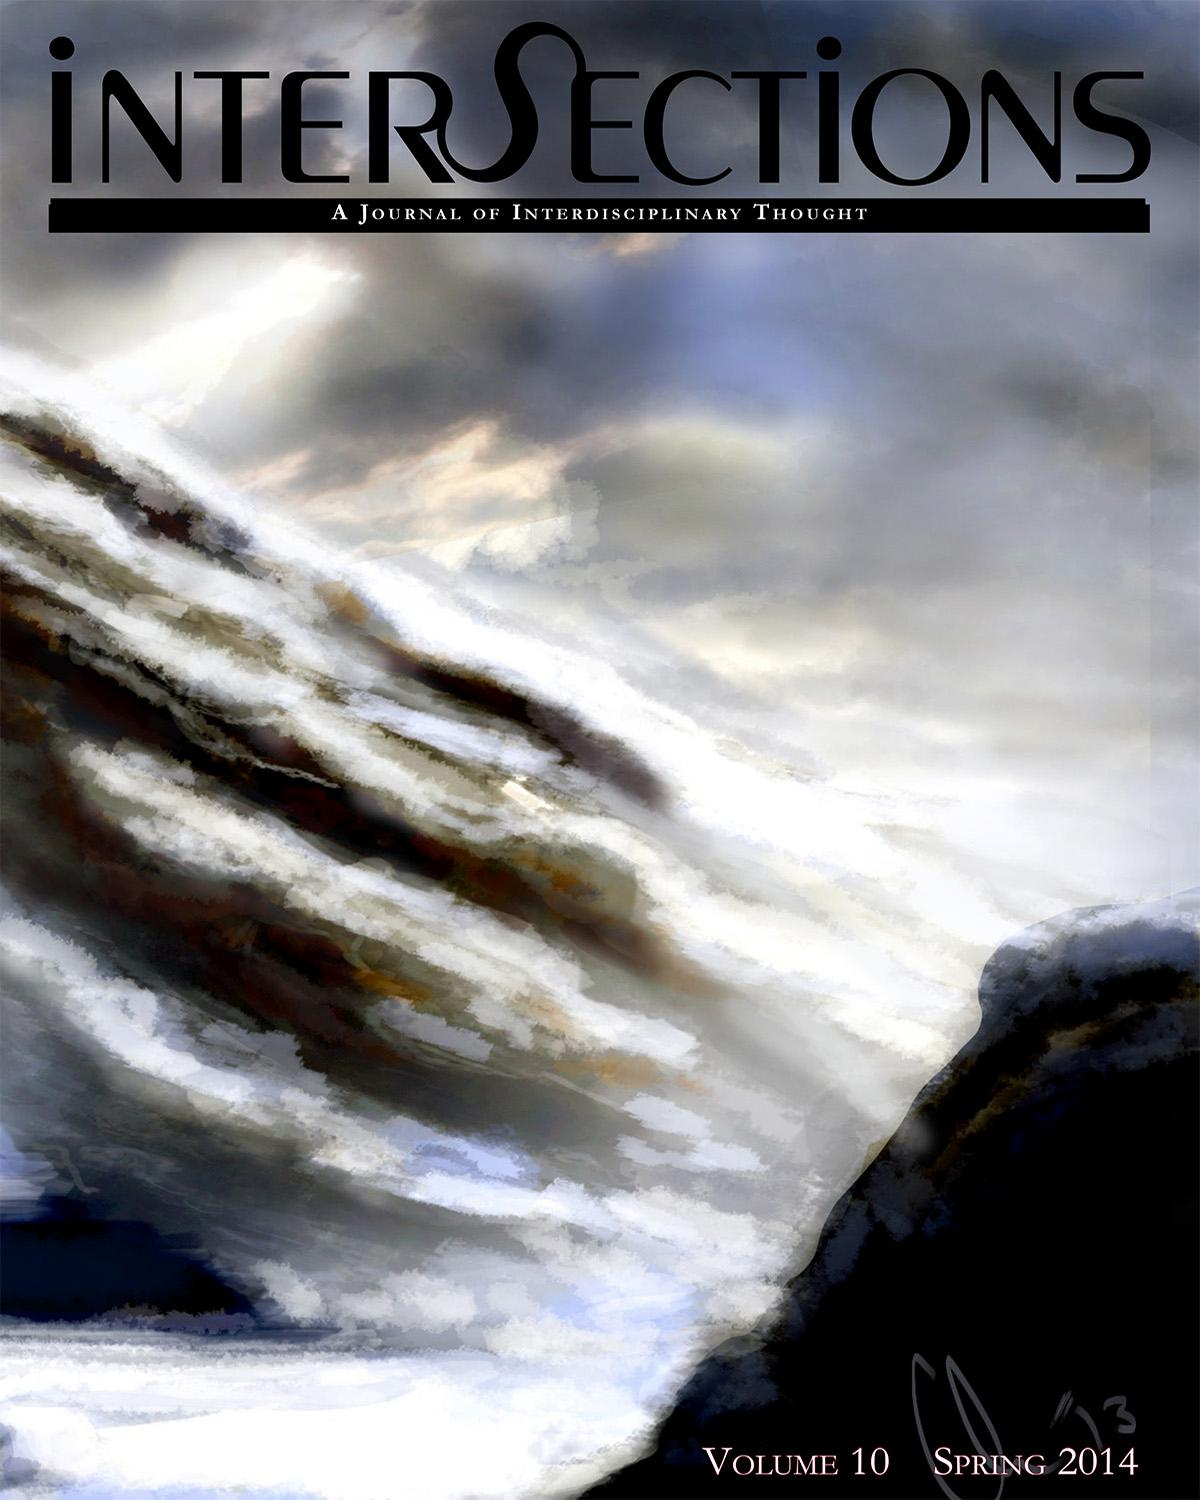 Intersections Volume 10 Issue 1